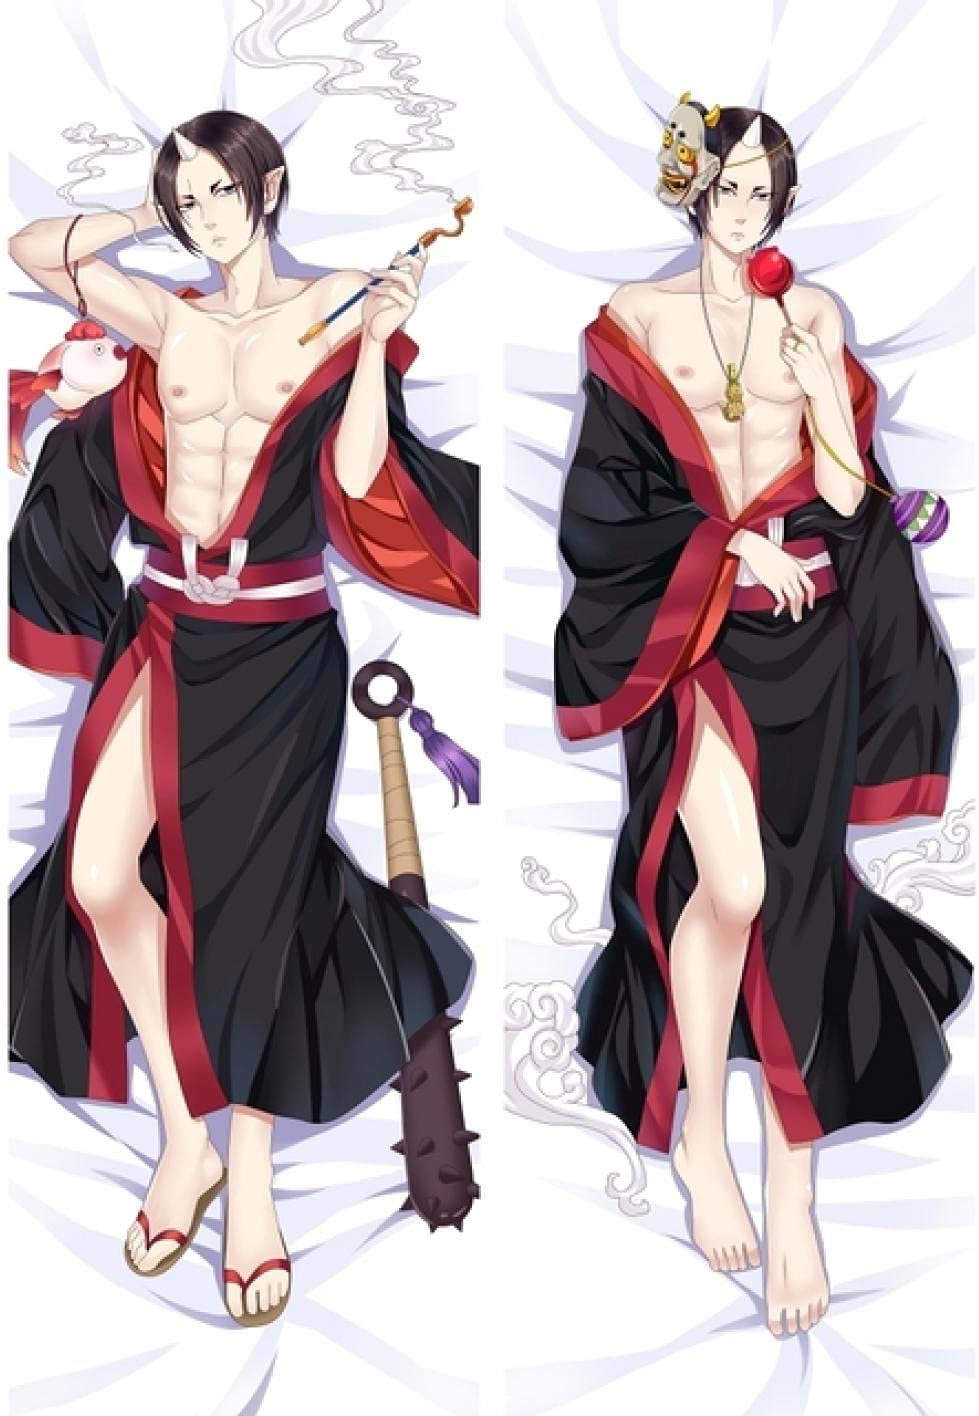 Online limited product HOICHAN Throw Pillow Cover Anime SEAL limited product Dakimakura Hoozuki Cosplay Peac